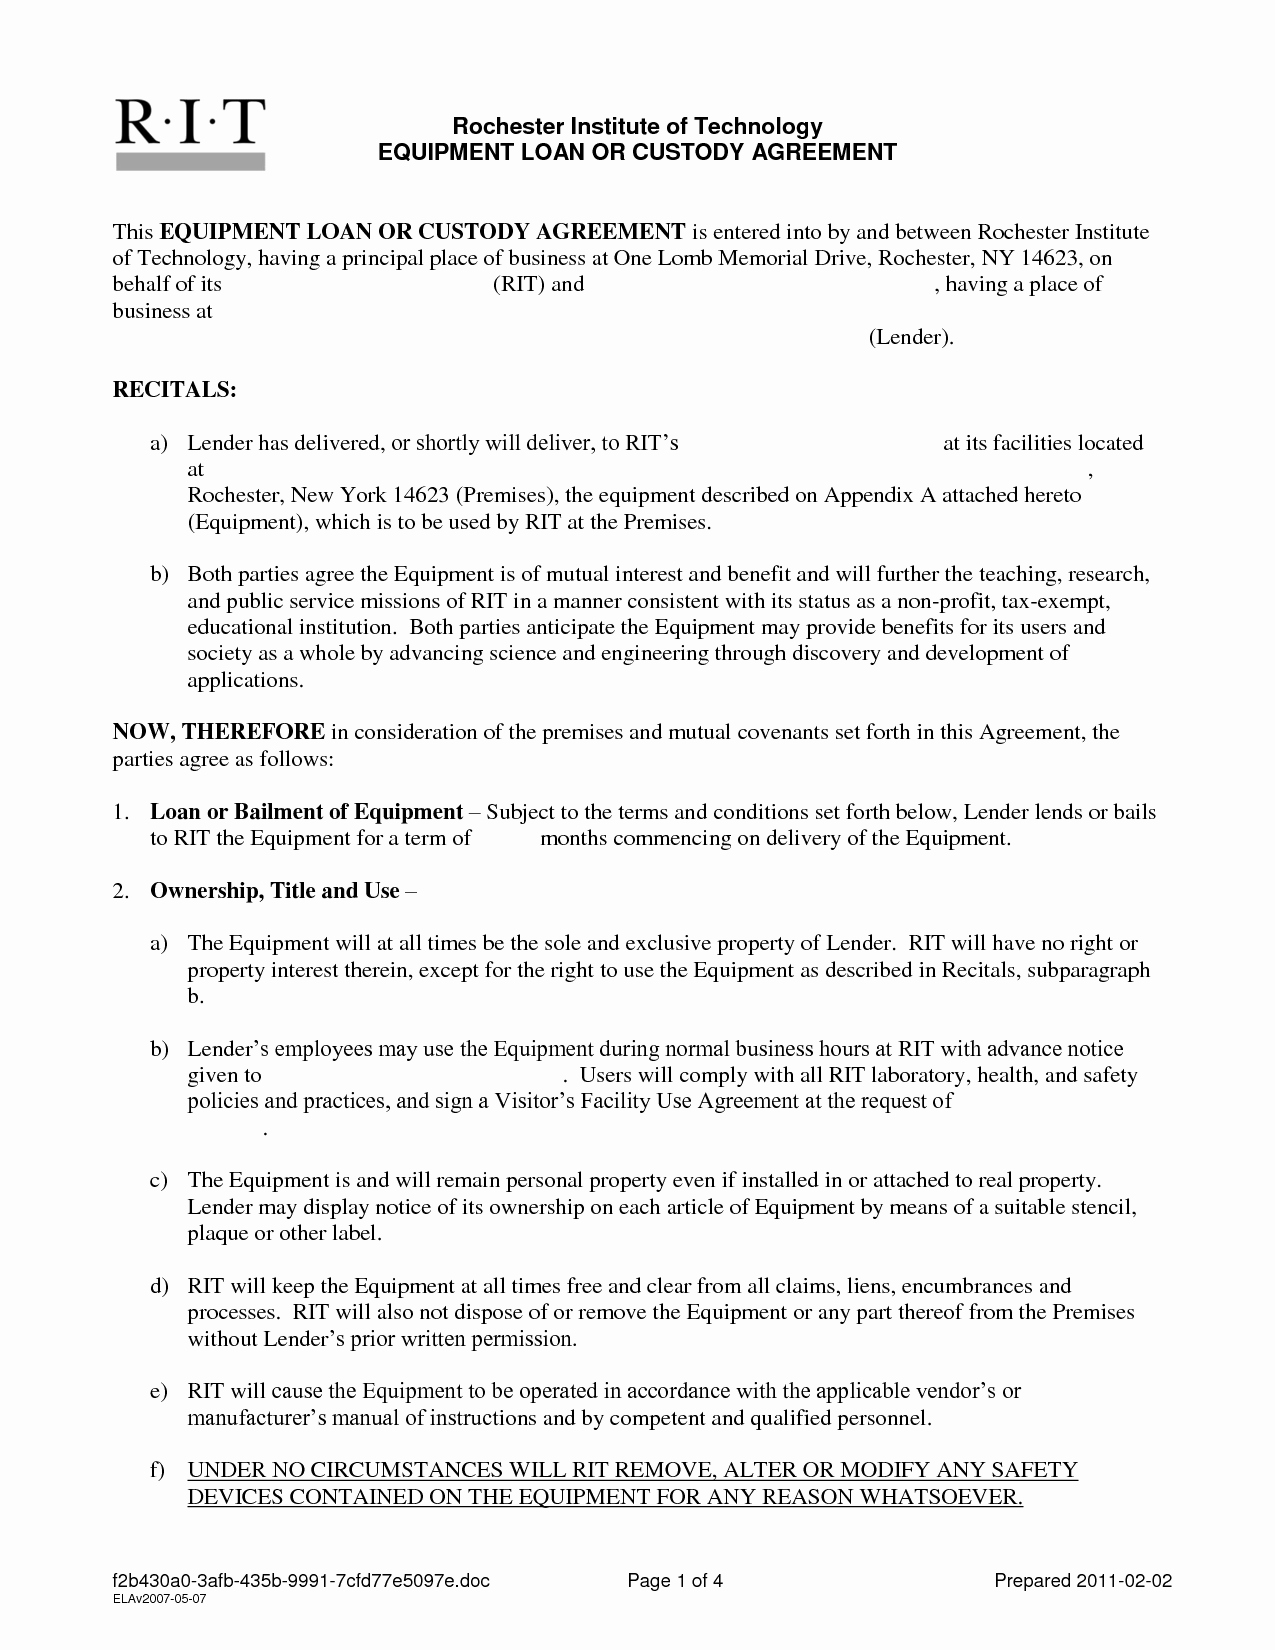 Personal Loan Agreement Template Free Luxury Free Printable Personal Loan Contract form Generic